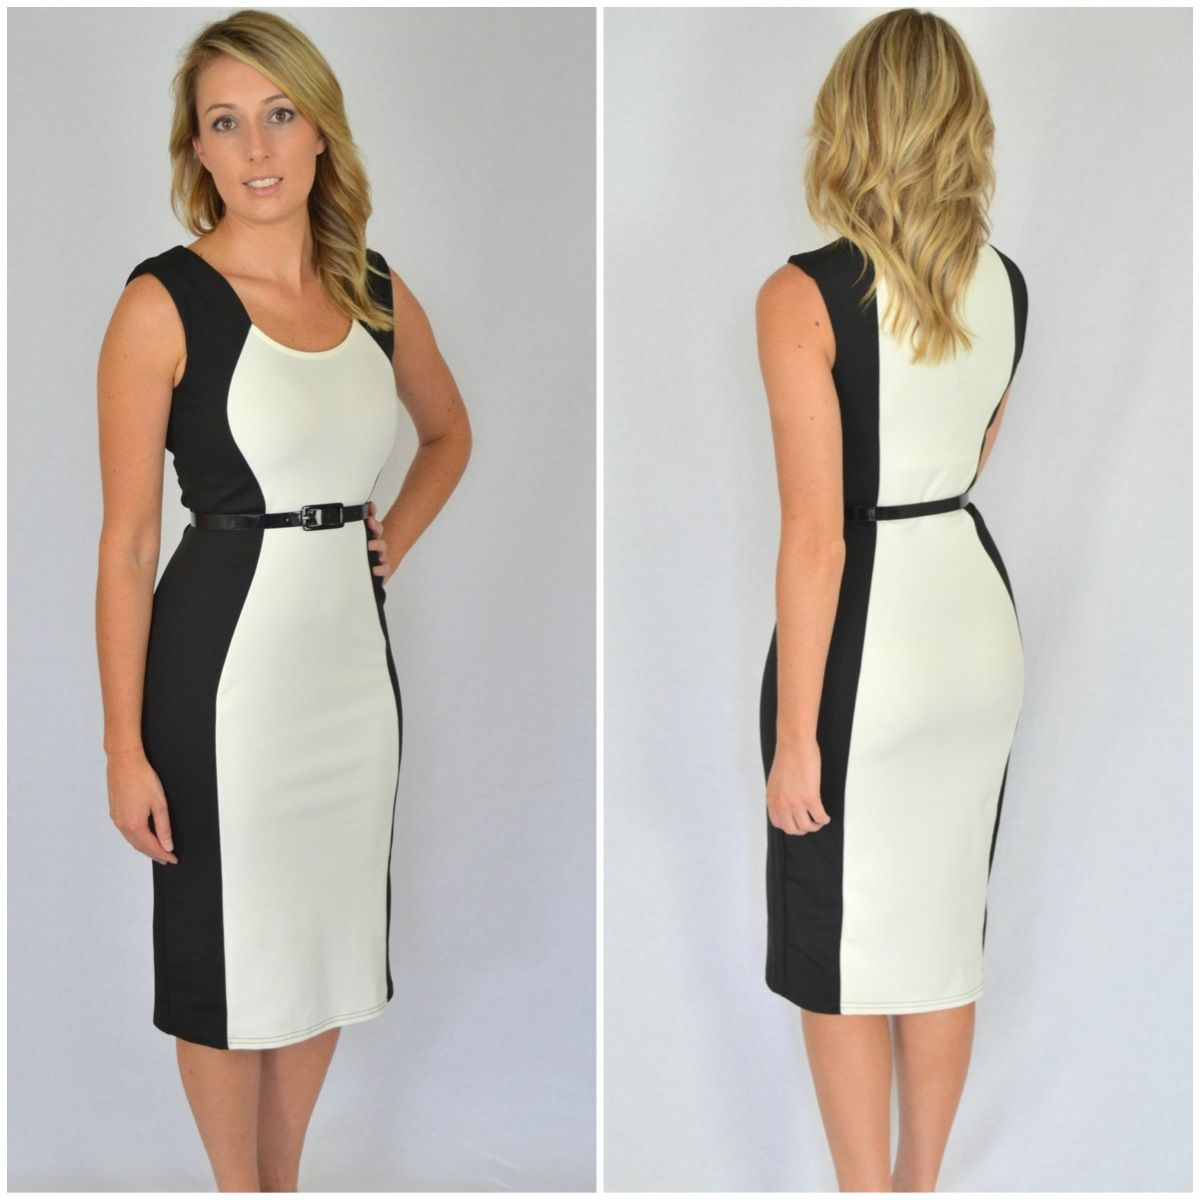 This Illusion Dress Is Just Amaze! Perfect For The